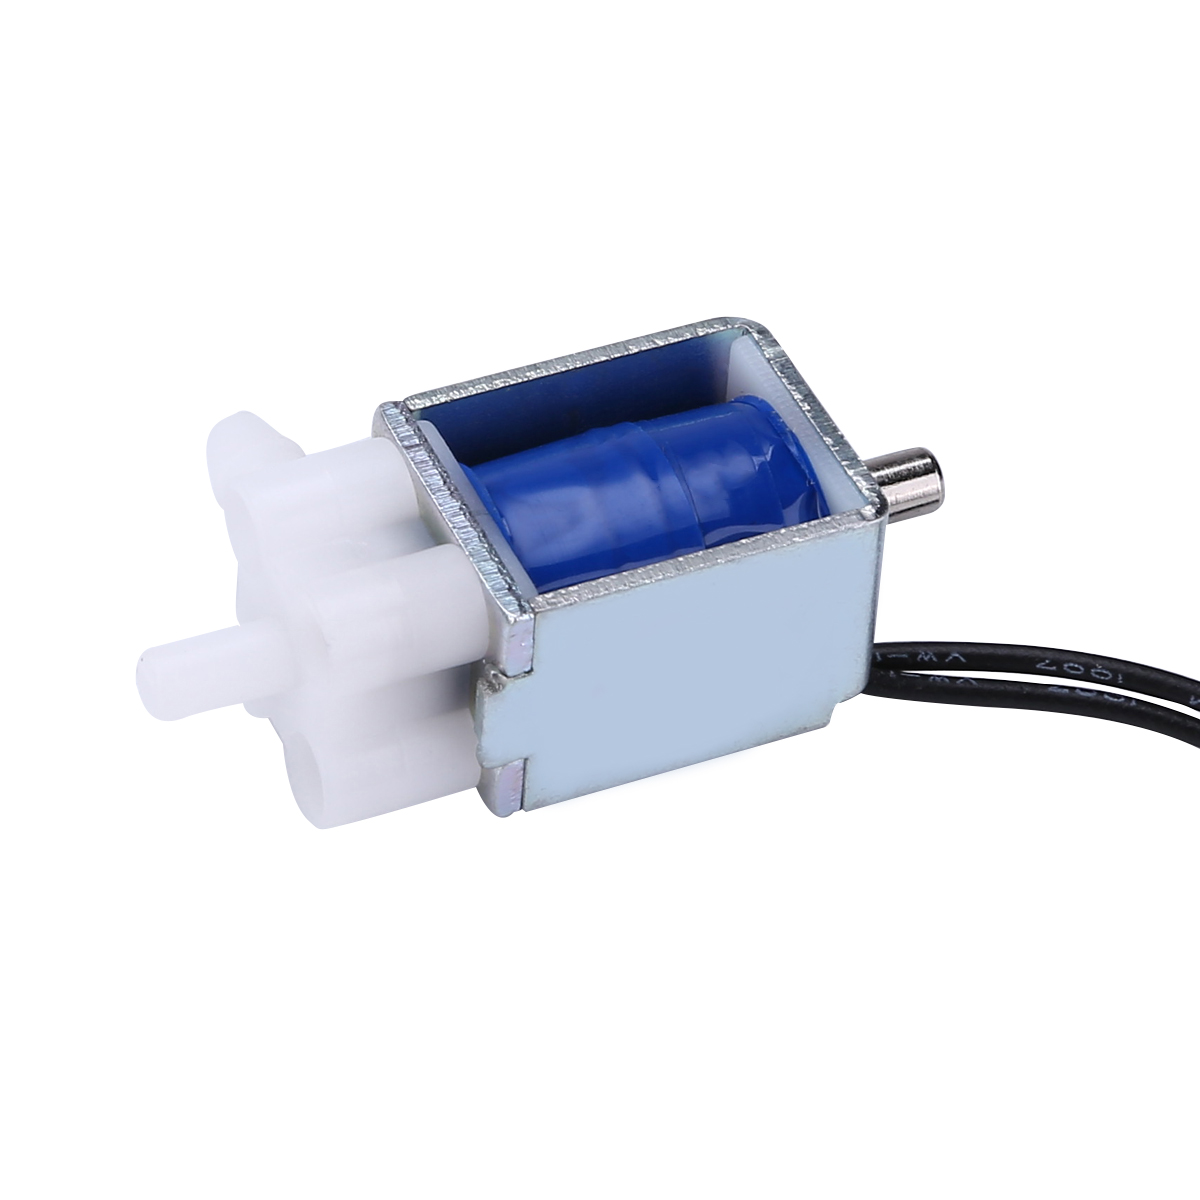 1Pc Solenoid Valve 220mA Electric Solenoid Valve Micro 2 Position 3 Way Electric Solenoid Valve For Gas Air Pump DC 5V 6V in Valve from Home Improvement